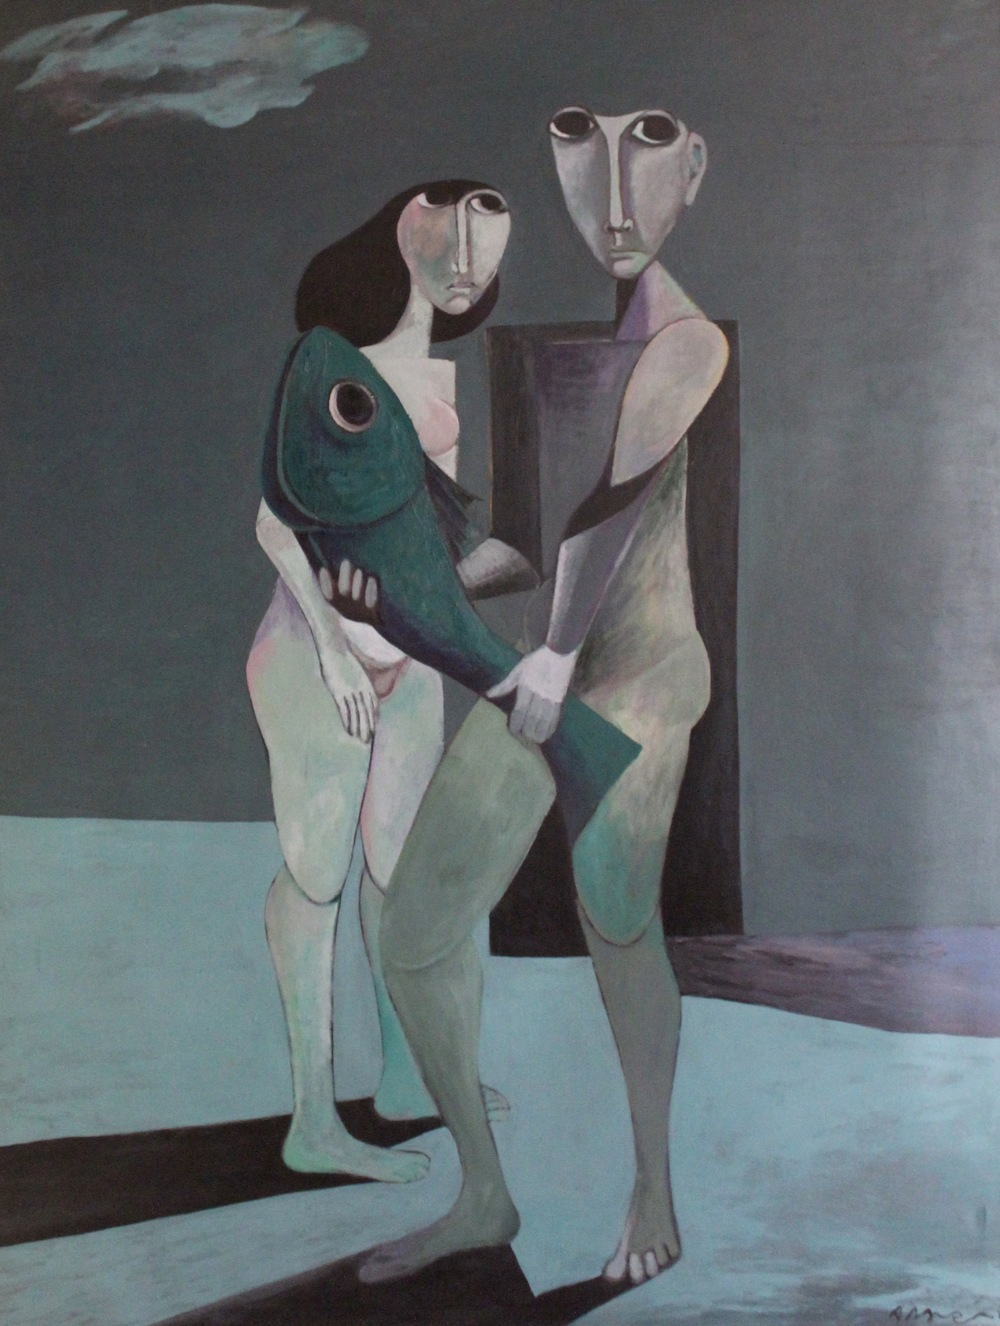 Ahmed Morsi, Green fish, 1985, Acrylic on canvas, 200 x 155 cm.